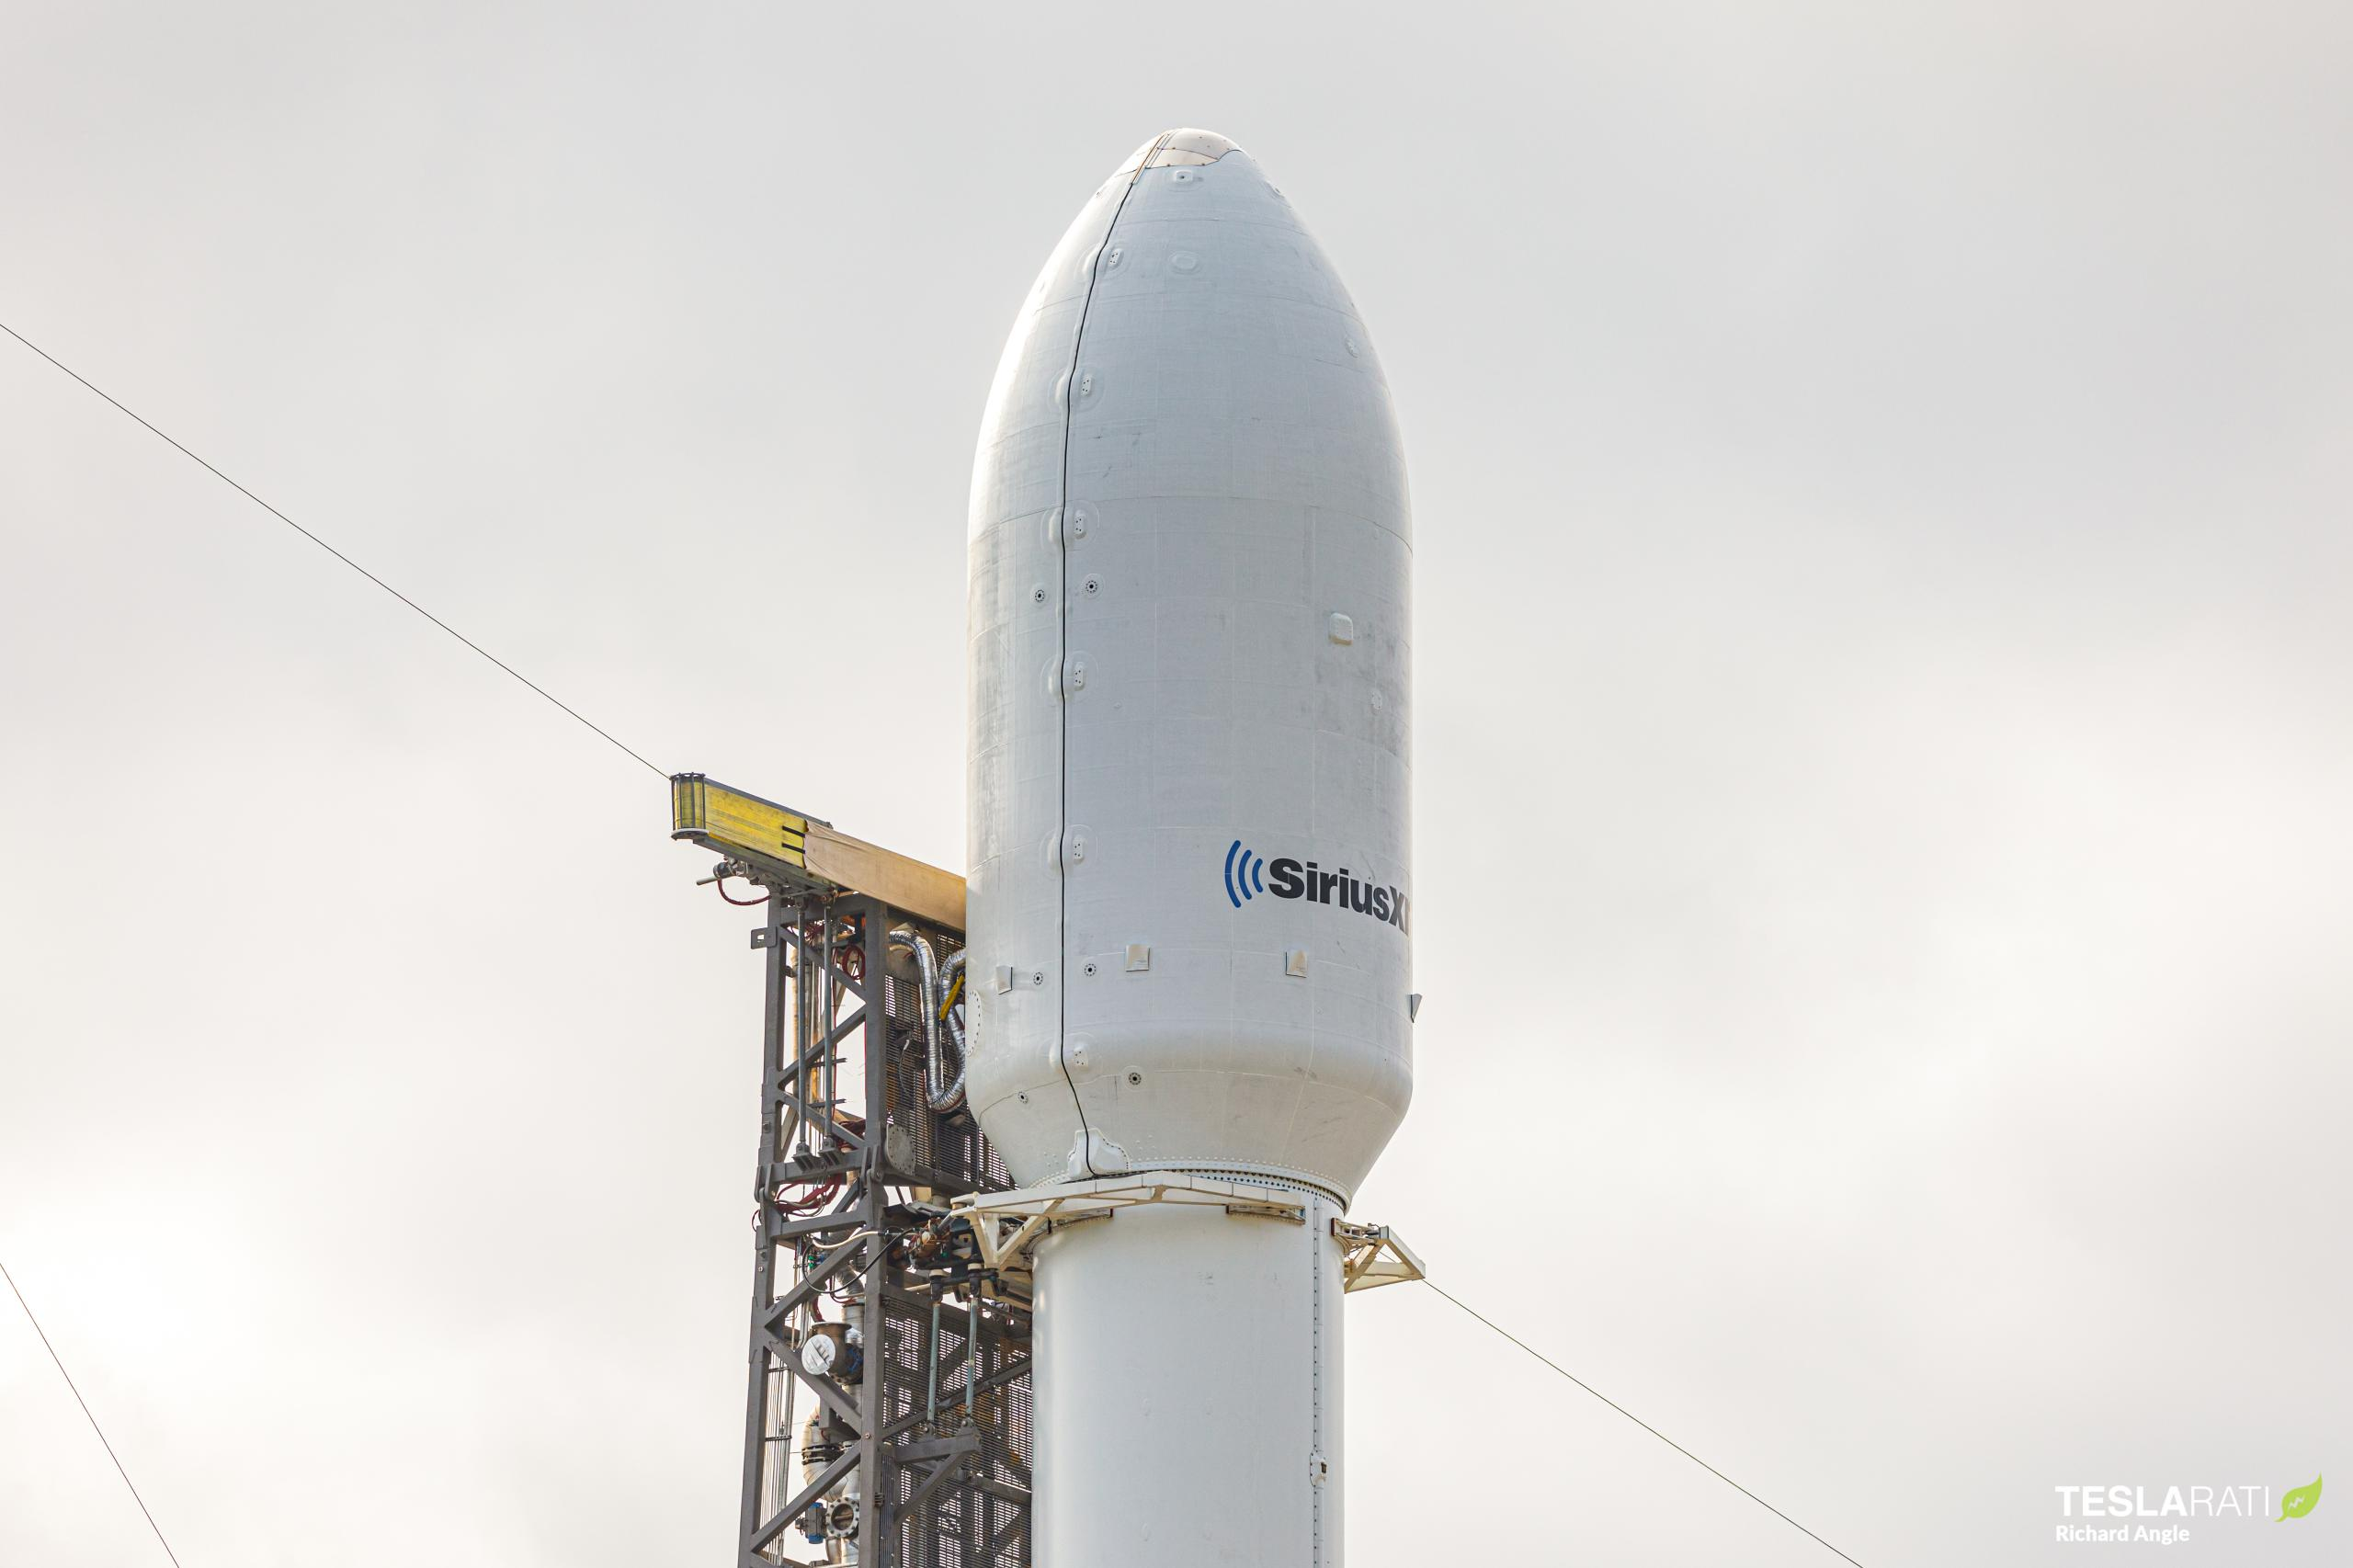 SXM-7 Falcon 9 B1051 LC-40 121220 (Richard Angle) vertical (1)